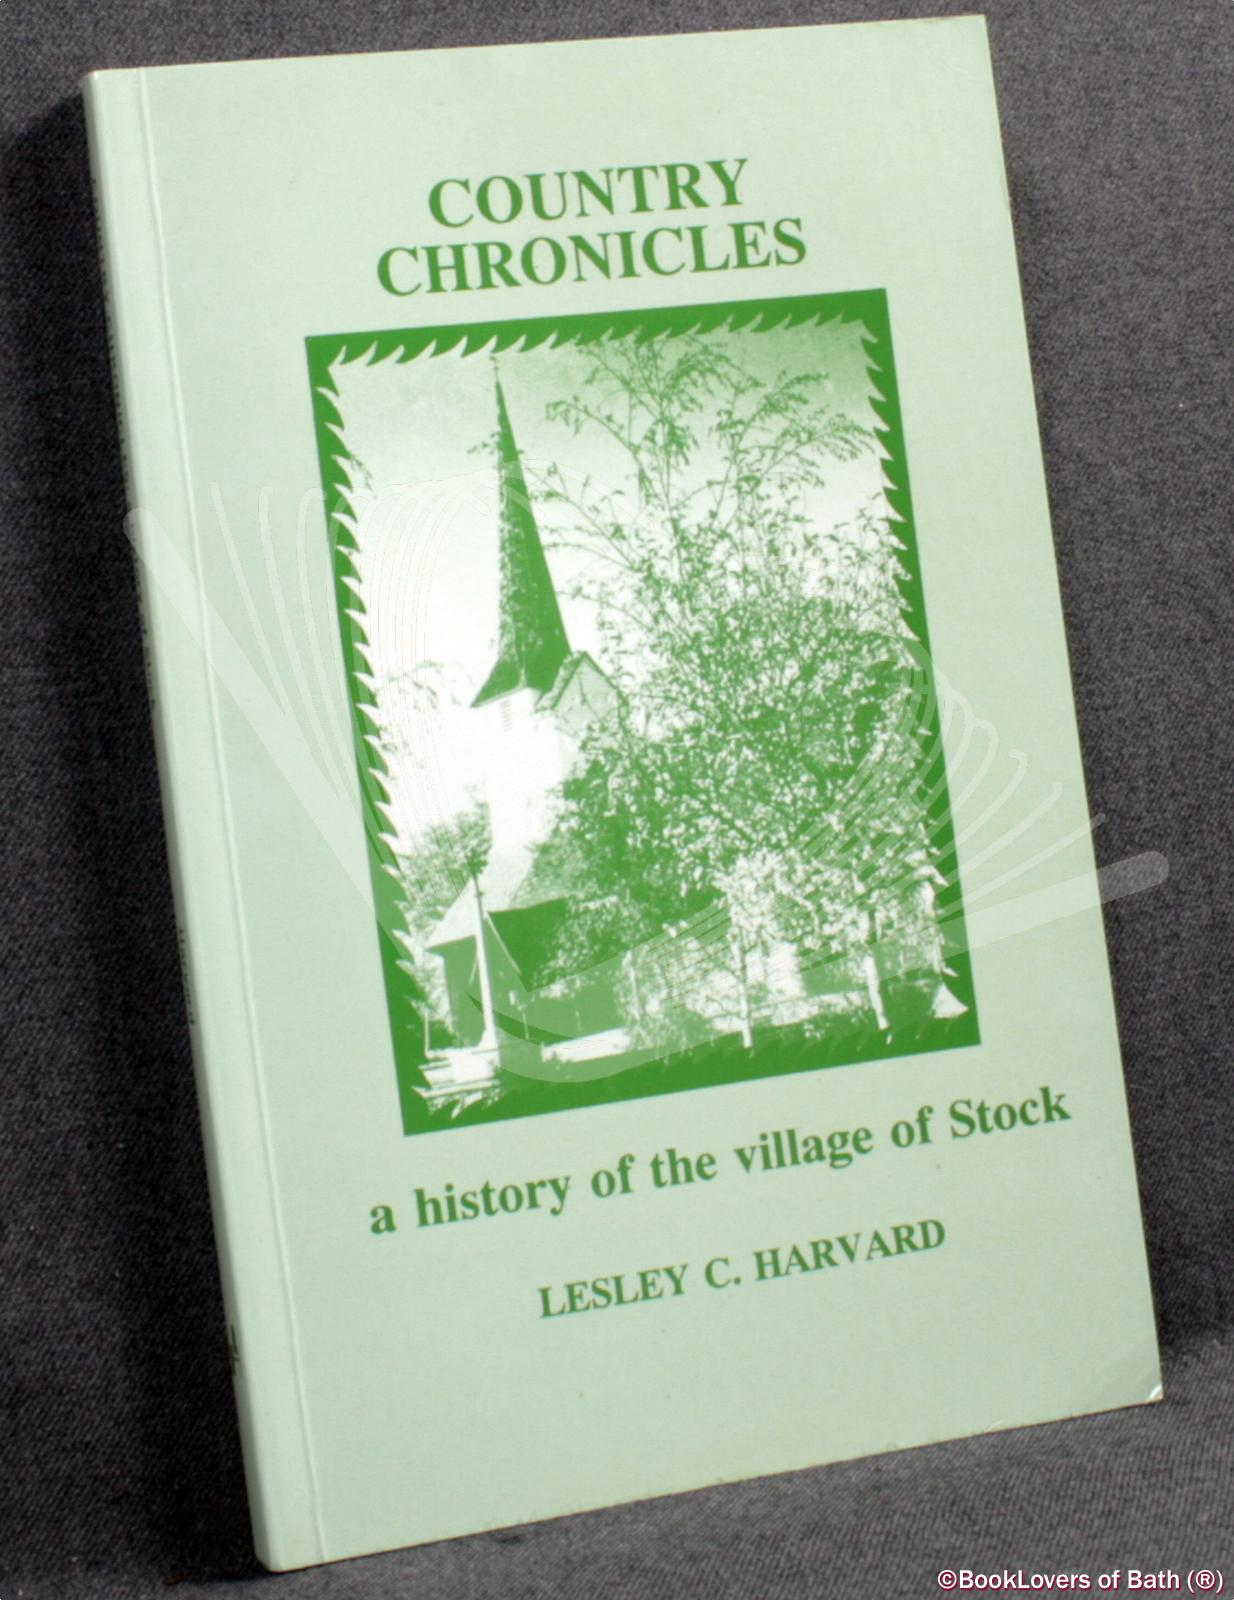 Country Chronicles: History of the Village of Stock - Lesley C. Harvard